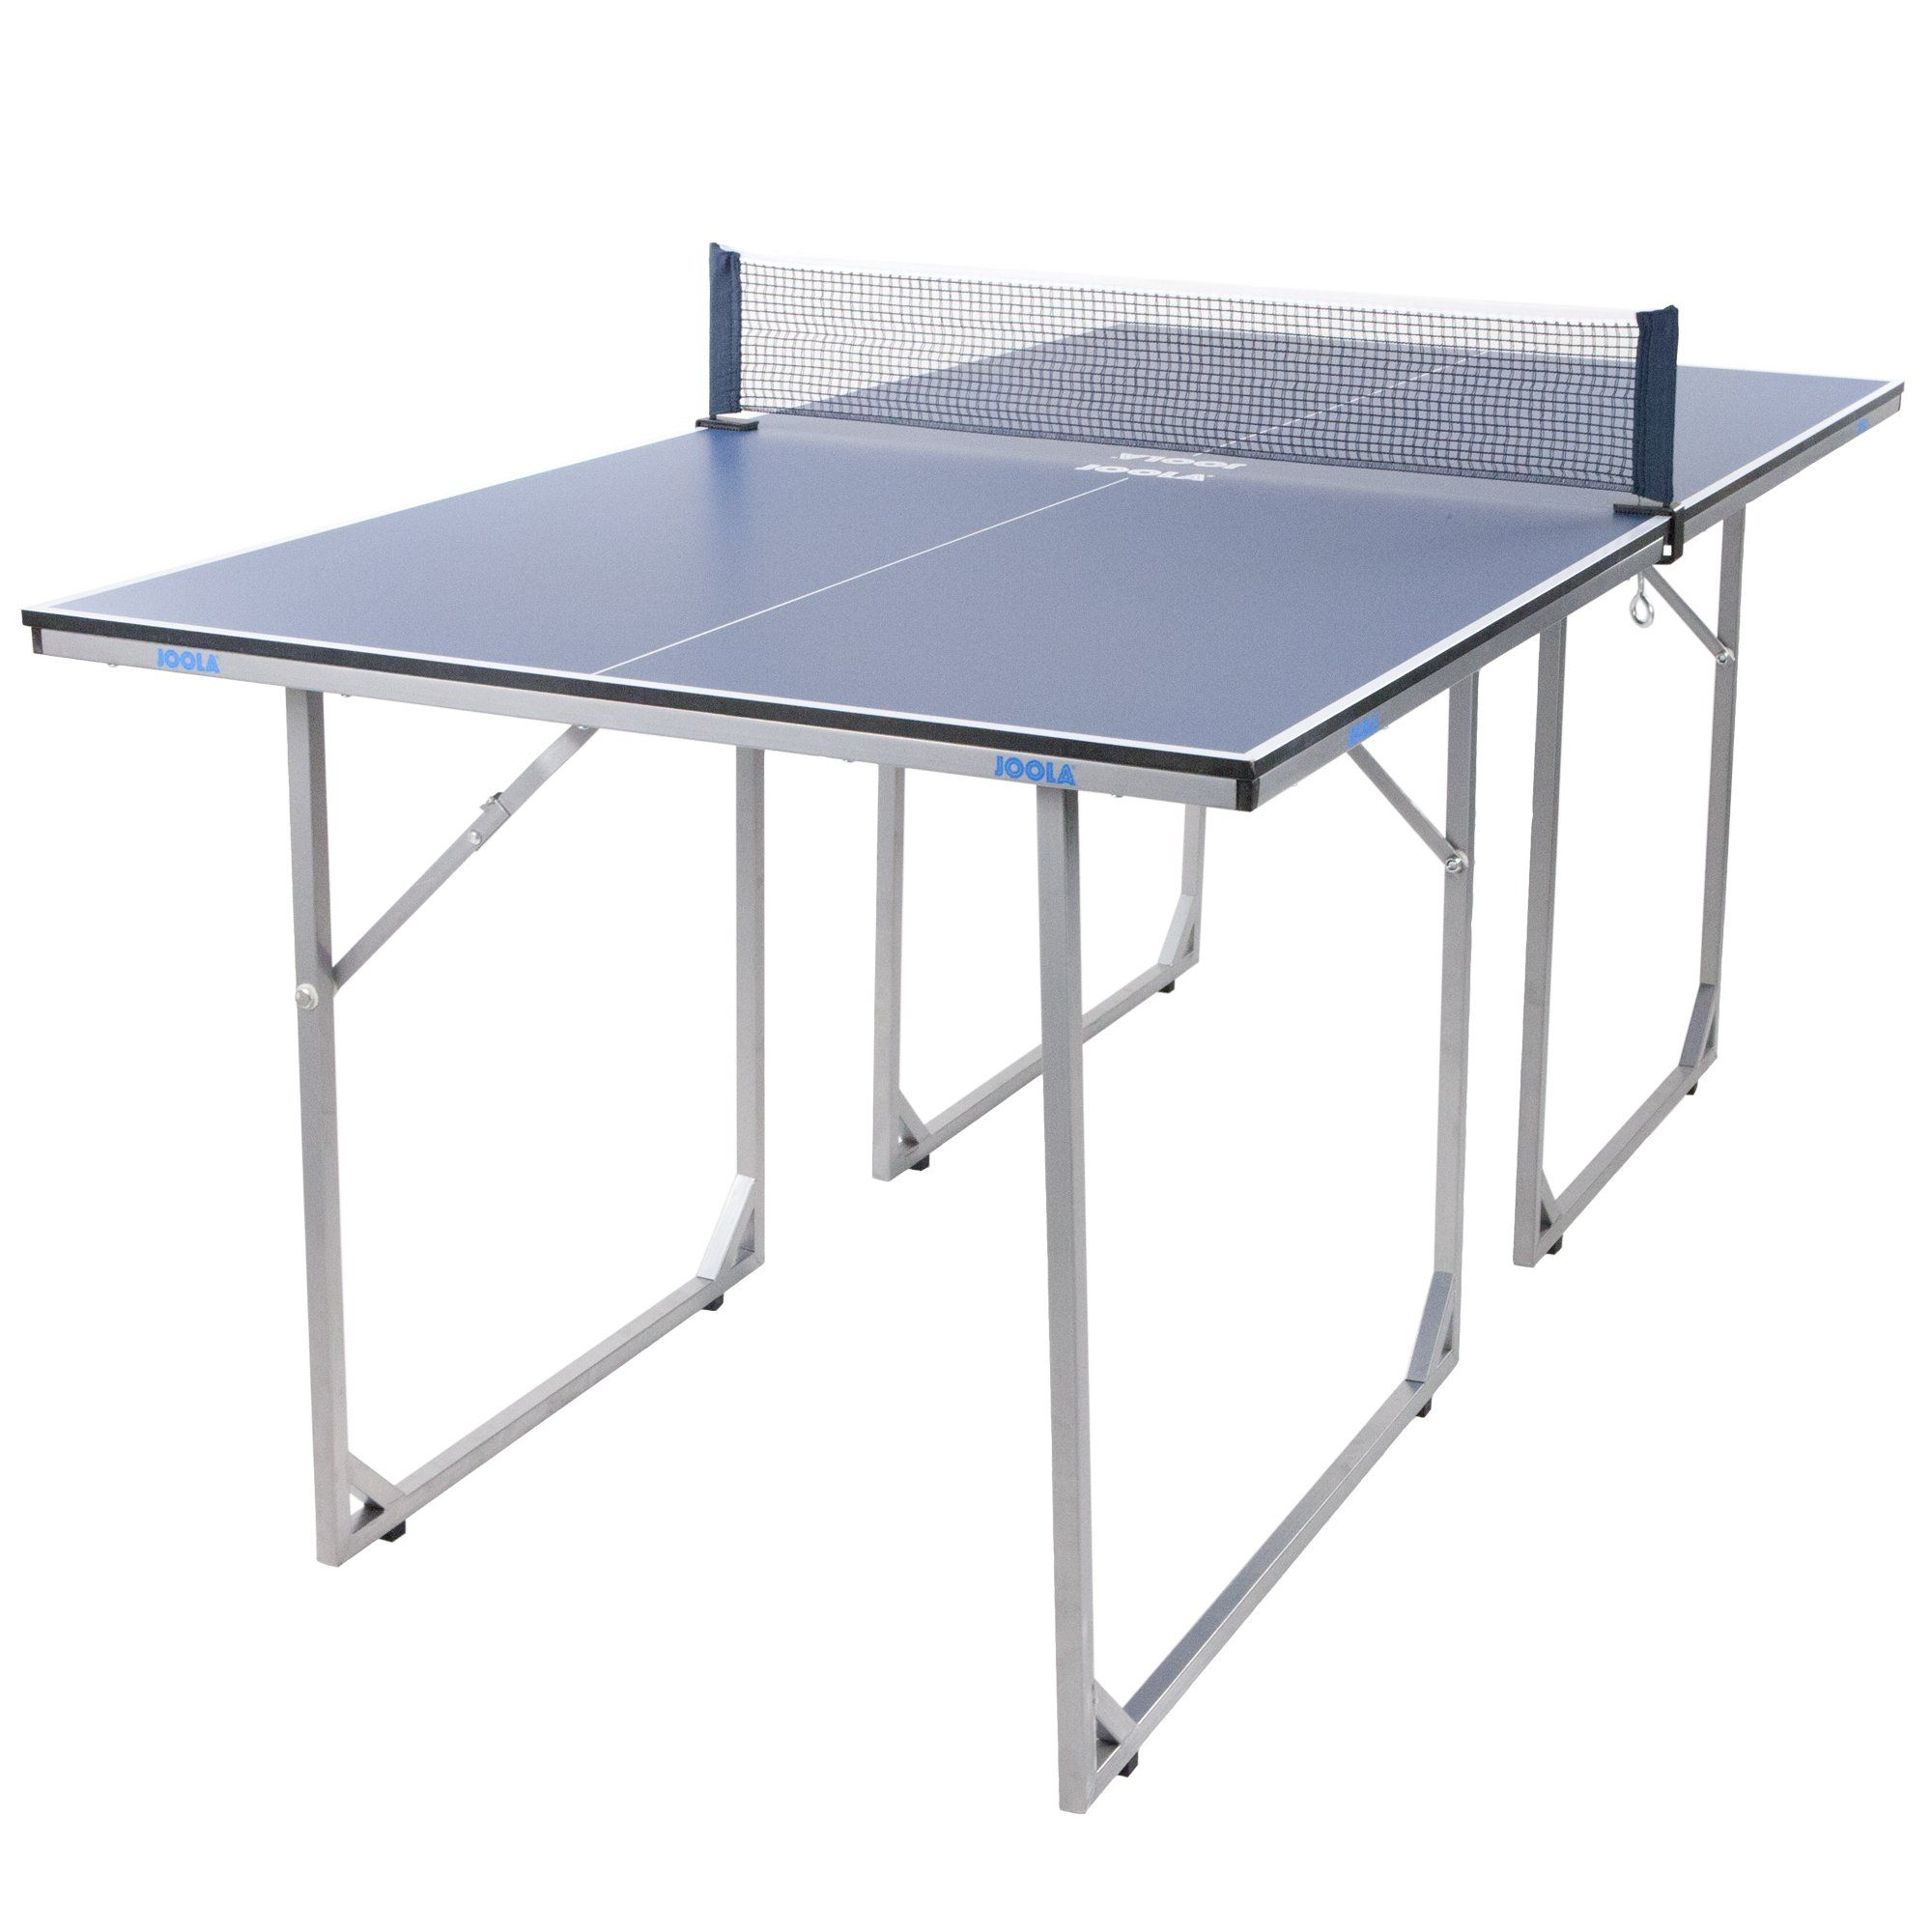 Joola Midsize Table Tennis Table 24 Savings The Midsized Table Stands At A Regulation 30 Inches But The Ping Pong Table Best Ping Pong Table Table Tennis